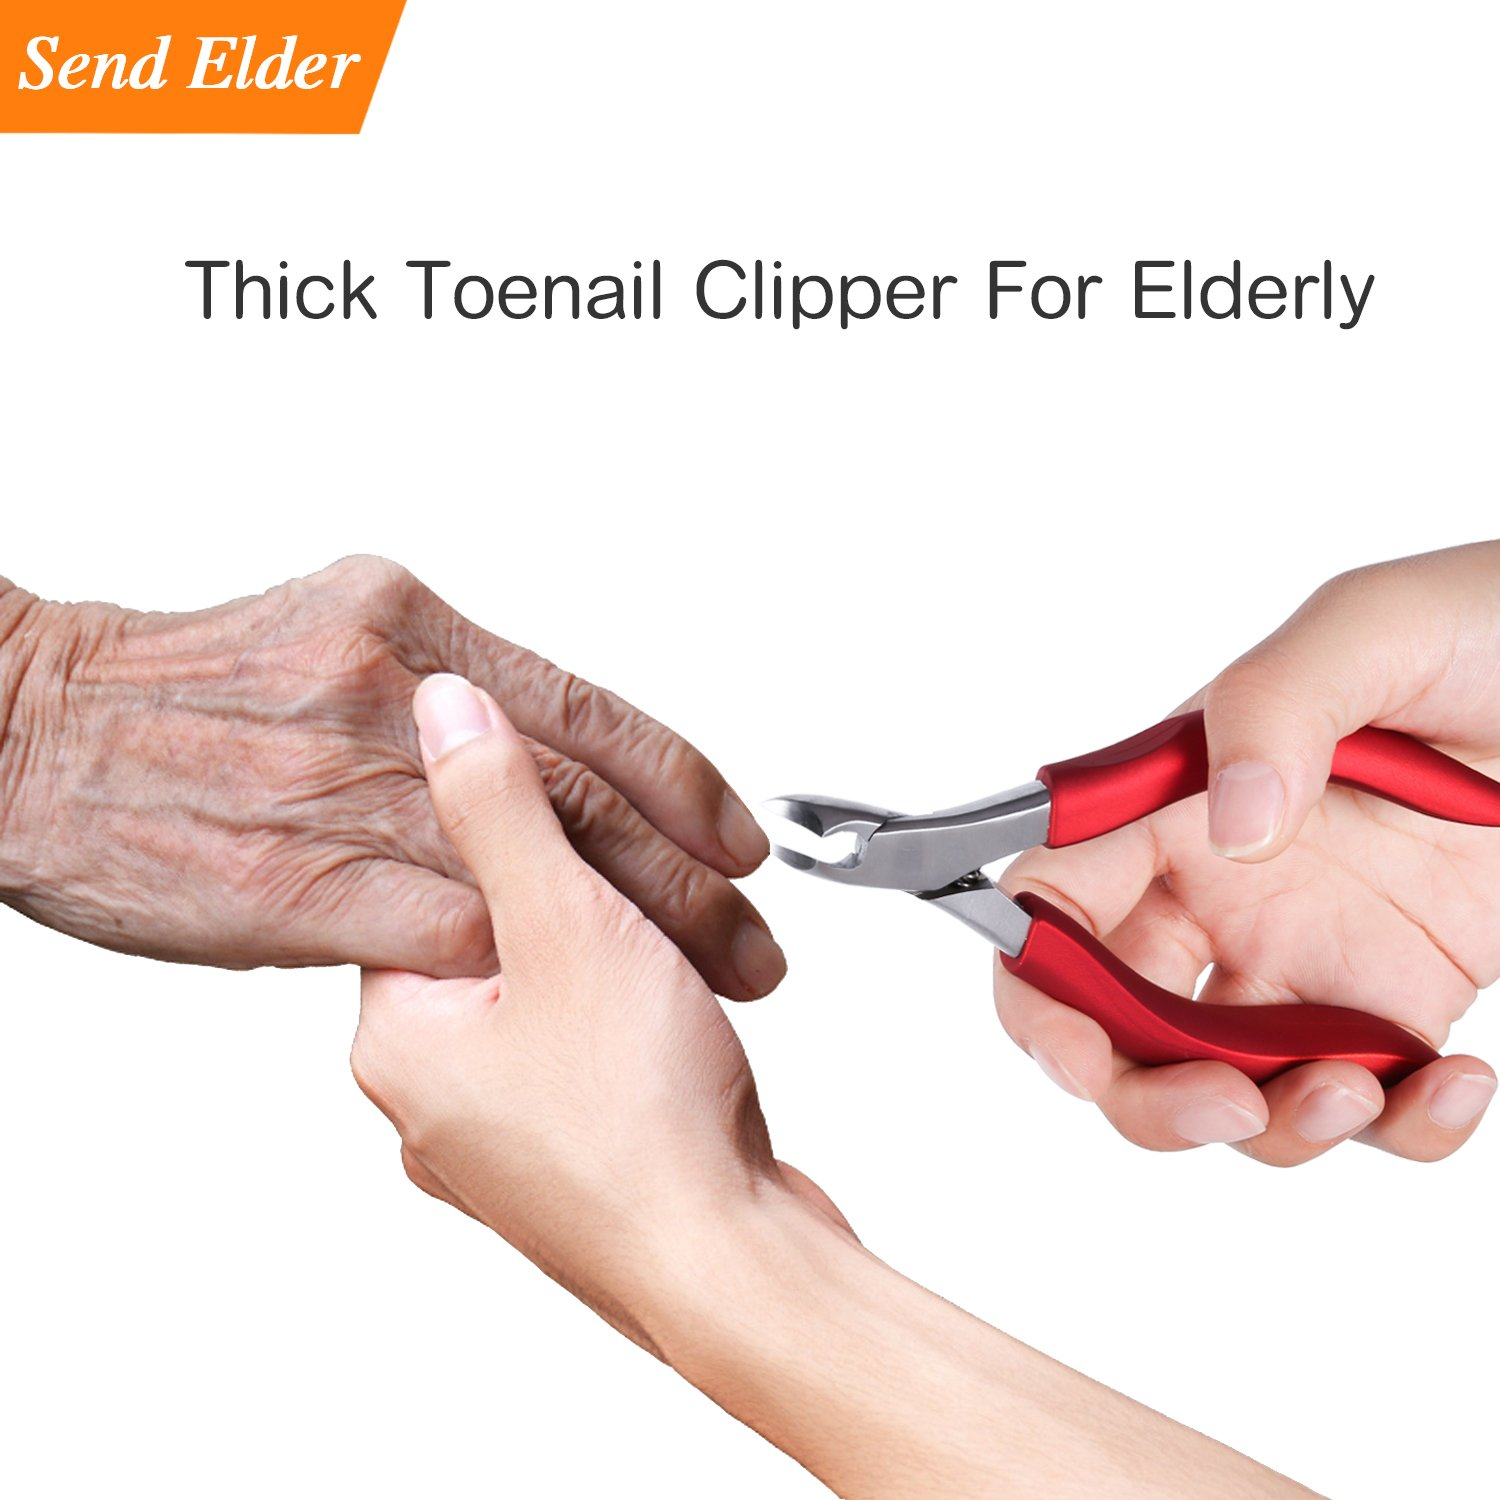 Amazon.com : Toenail clippers for elderly, Used For Thick Toenails ...